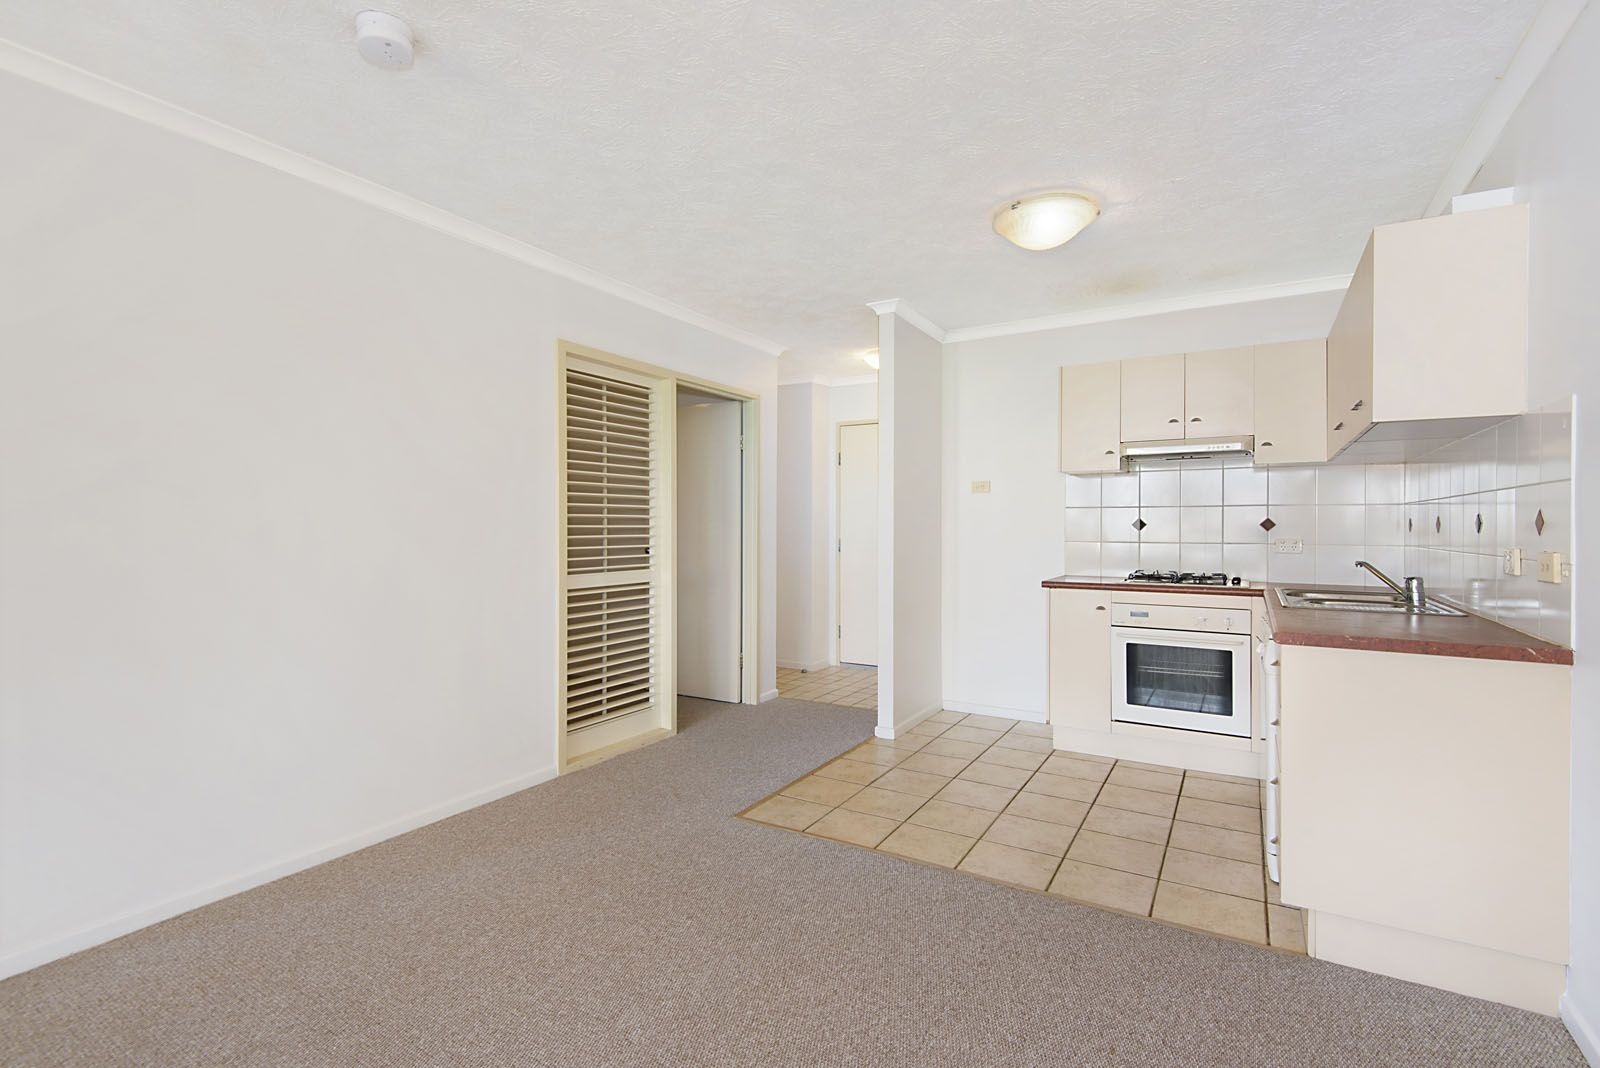 A23/35 Gotha Street, Fortitude Valley QLD 4006, Image 2